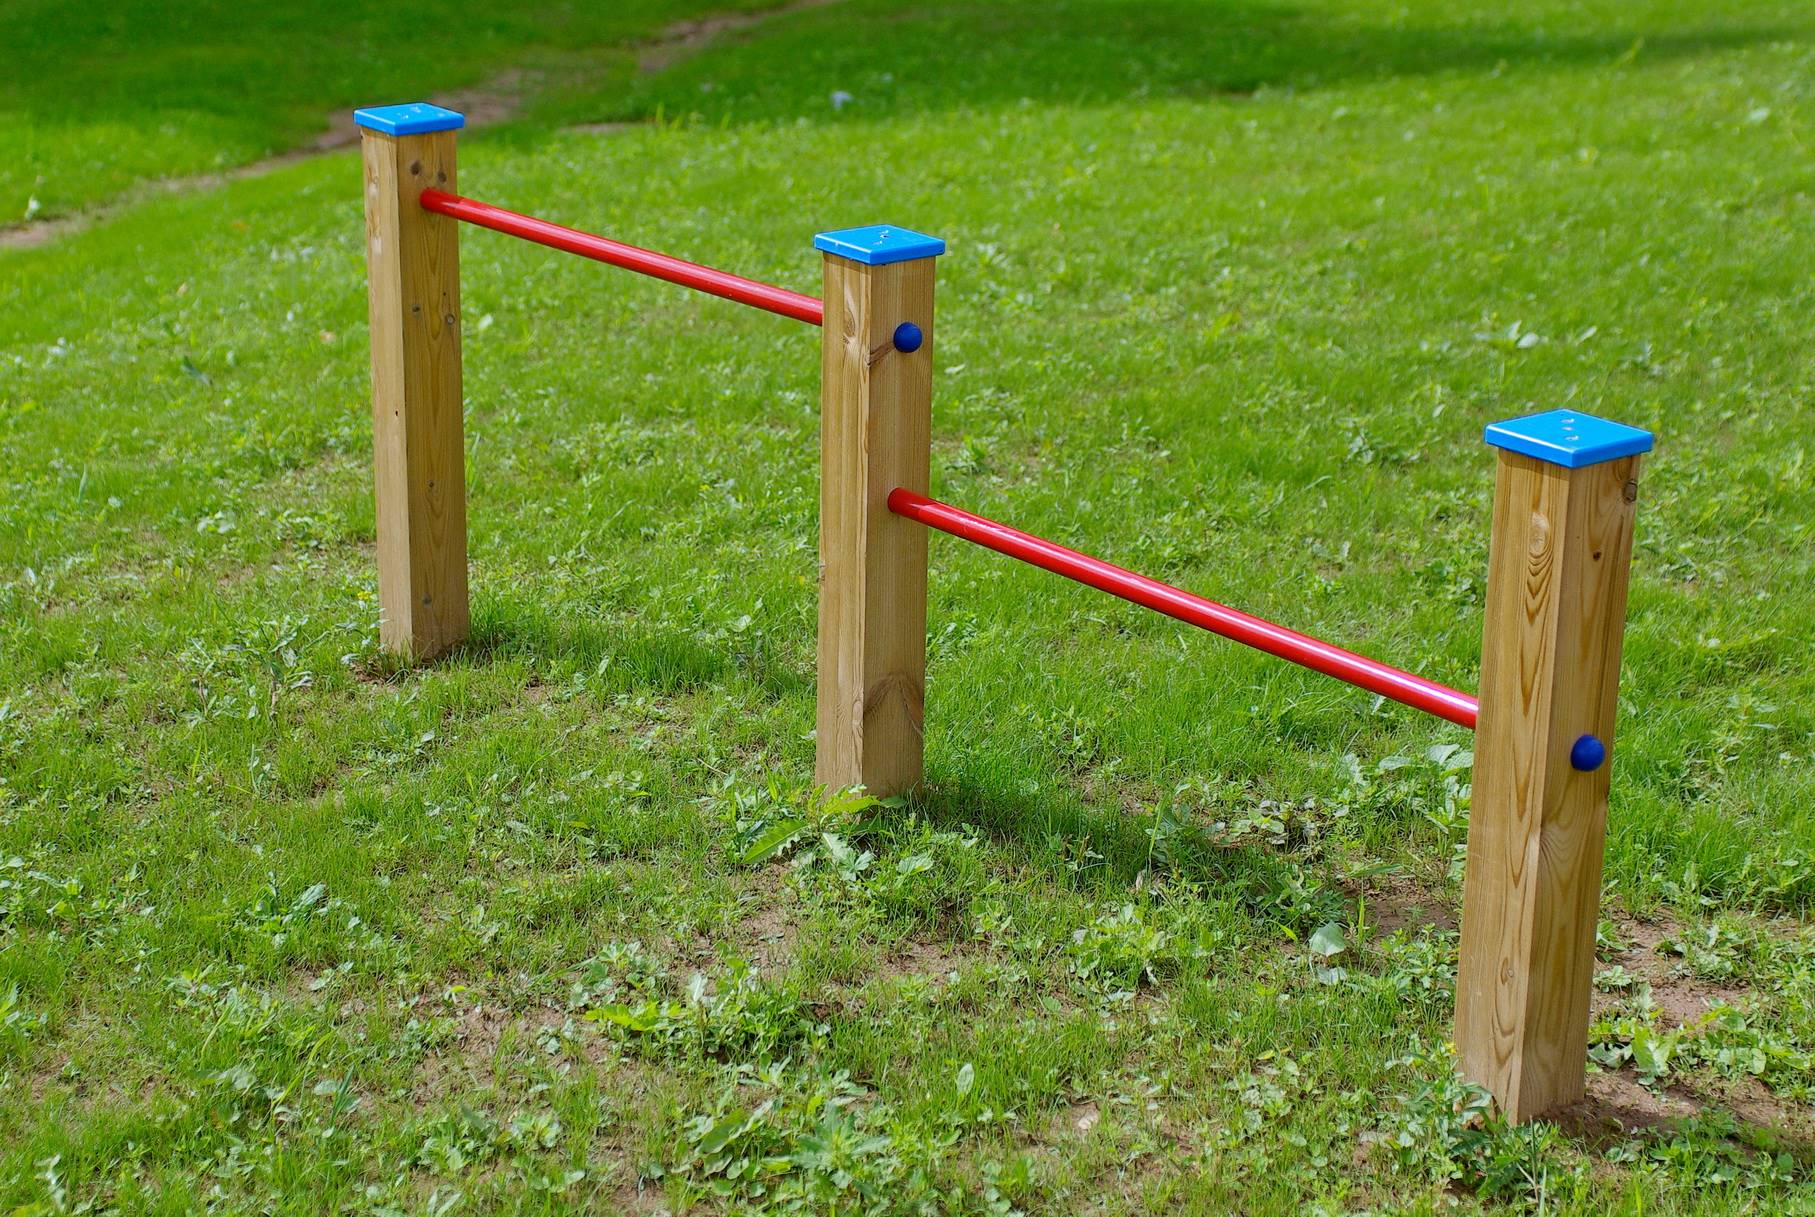 TipTipTap Aluminium  Push-up bars